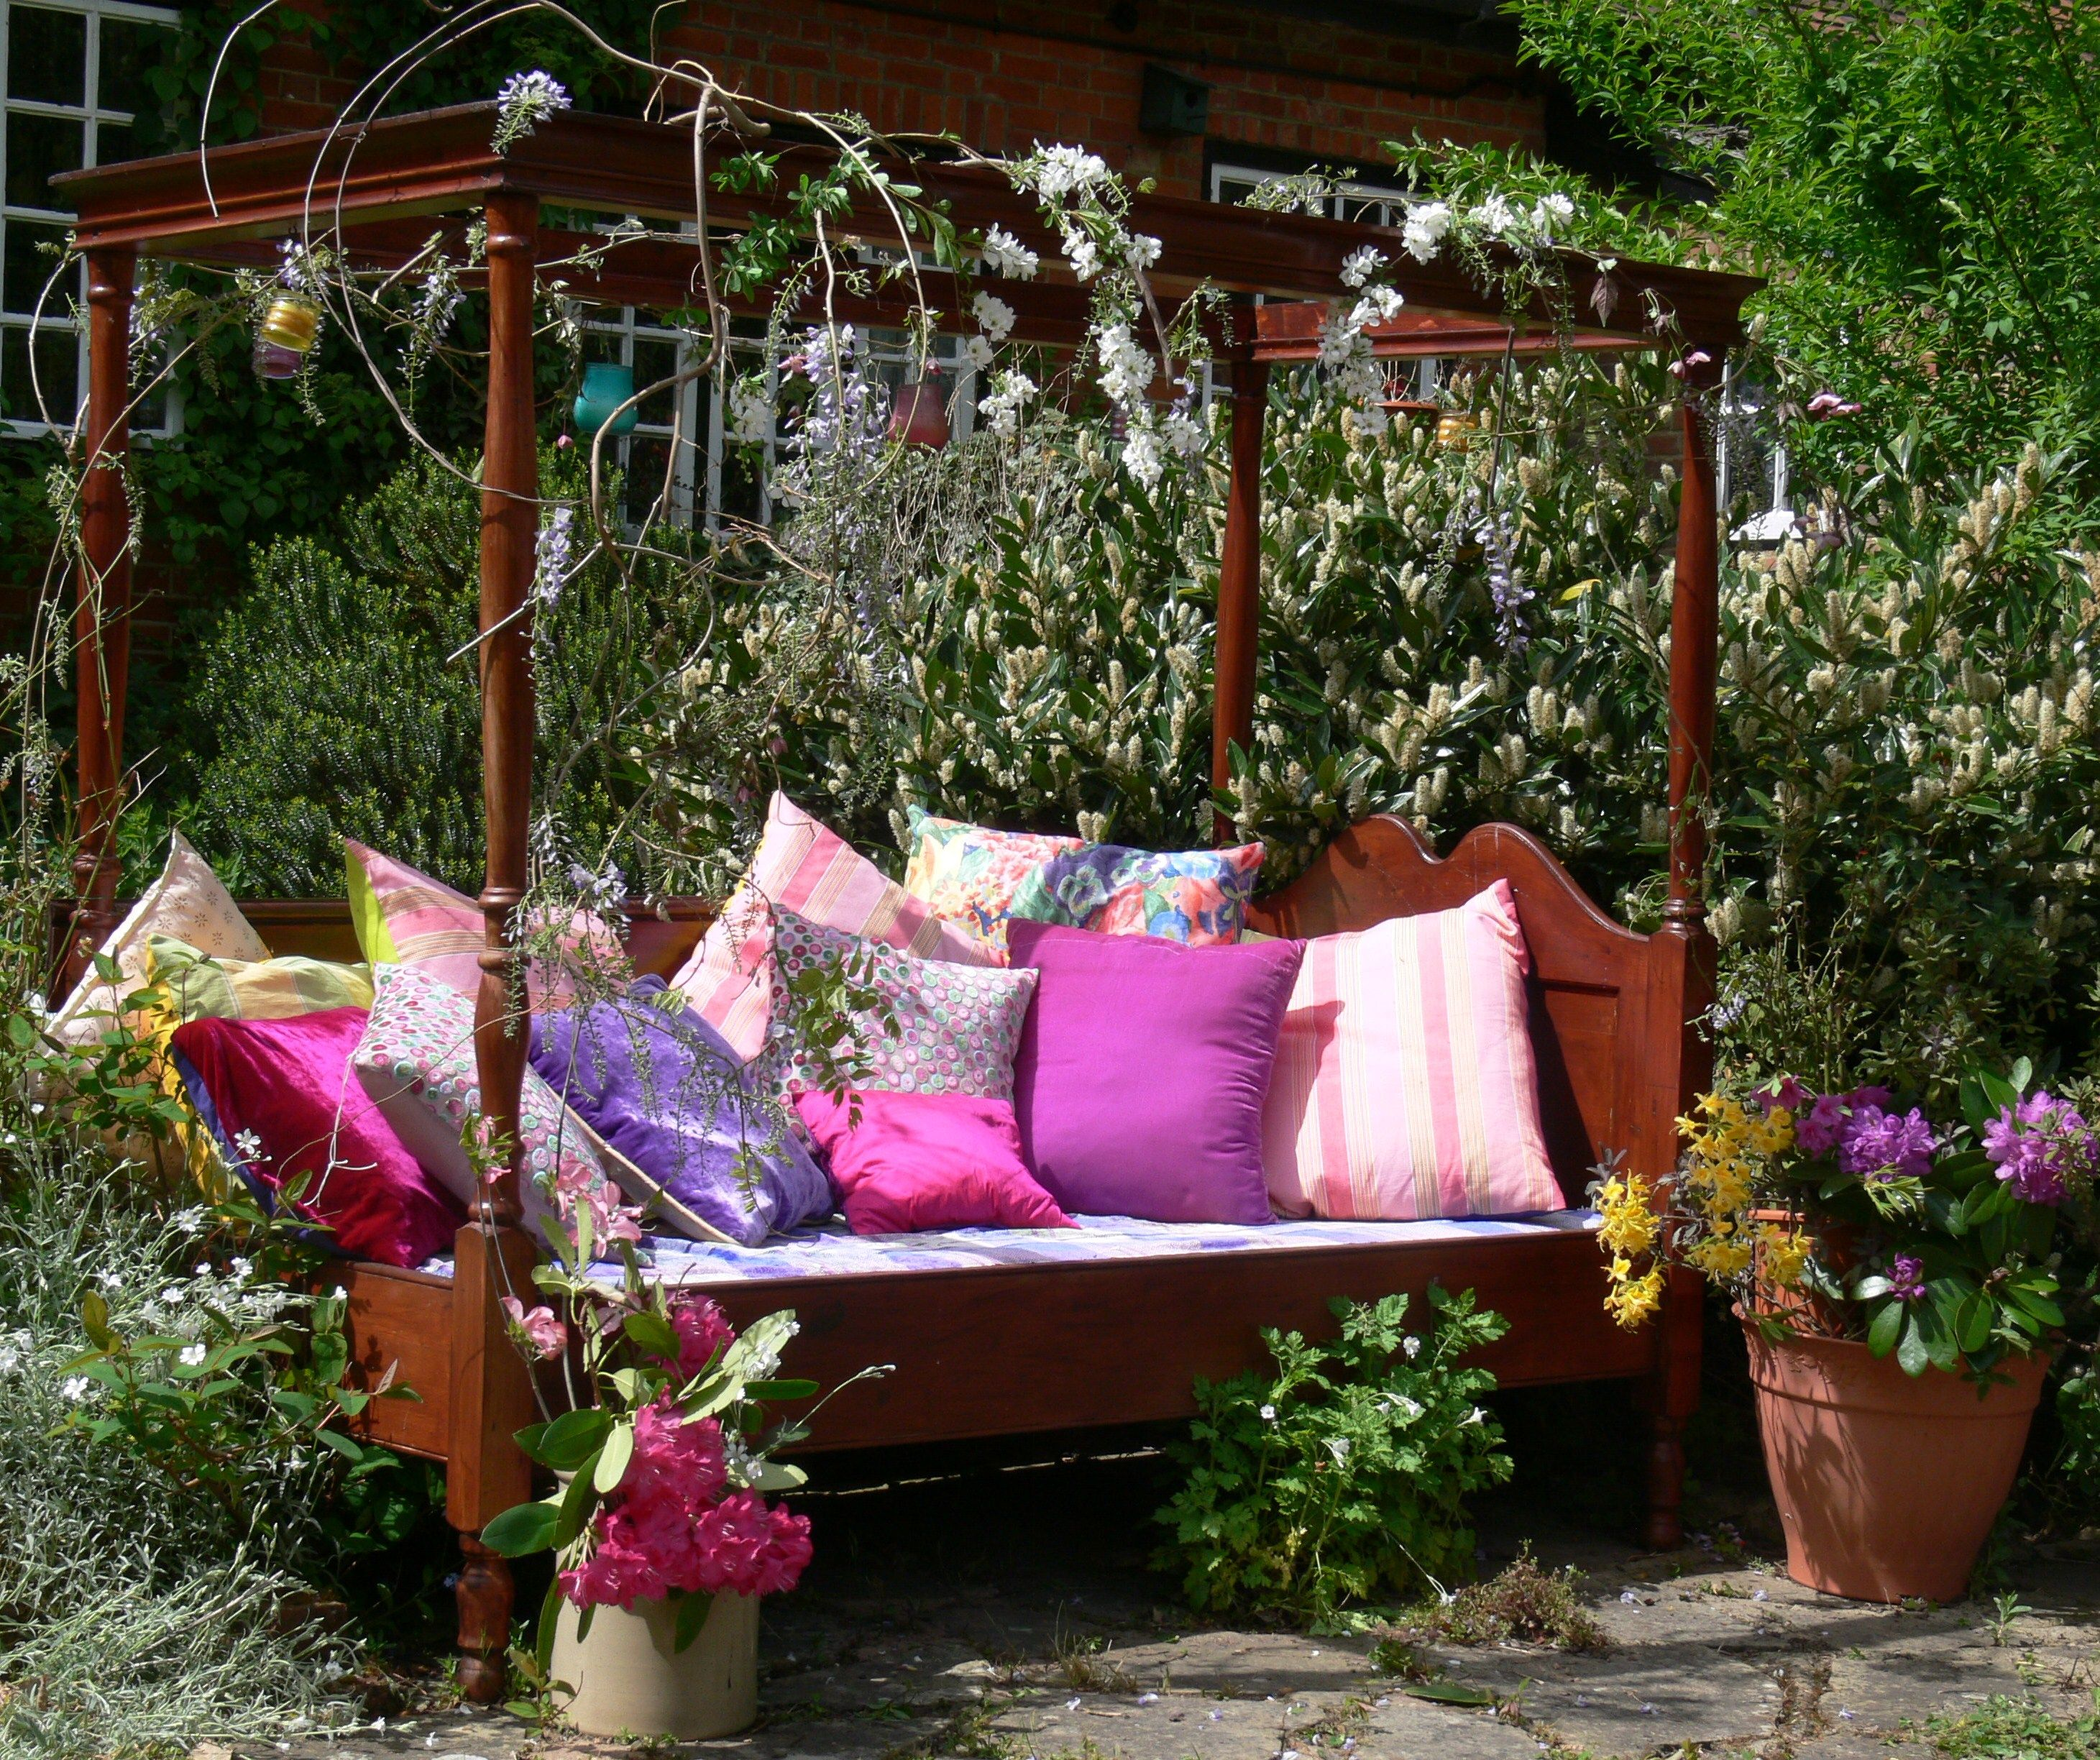 Garden Furniture Unusual making unusual garden furniture | make it and mend it - upcycling